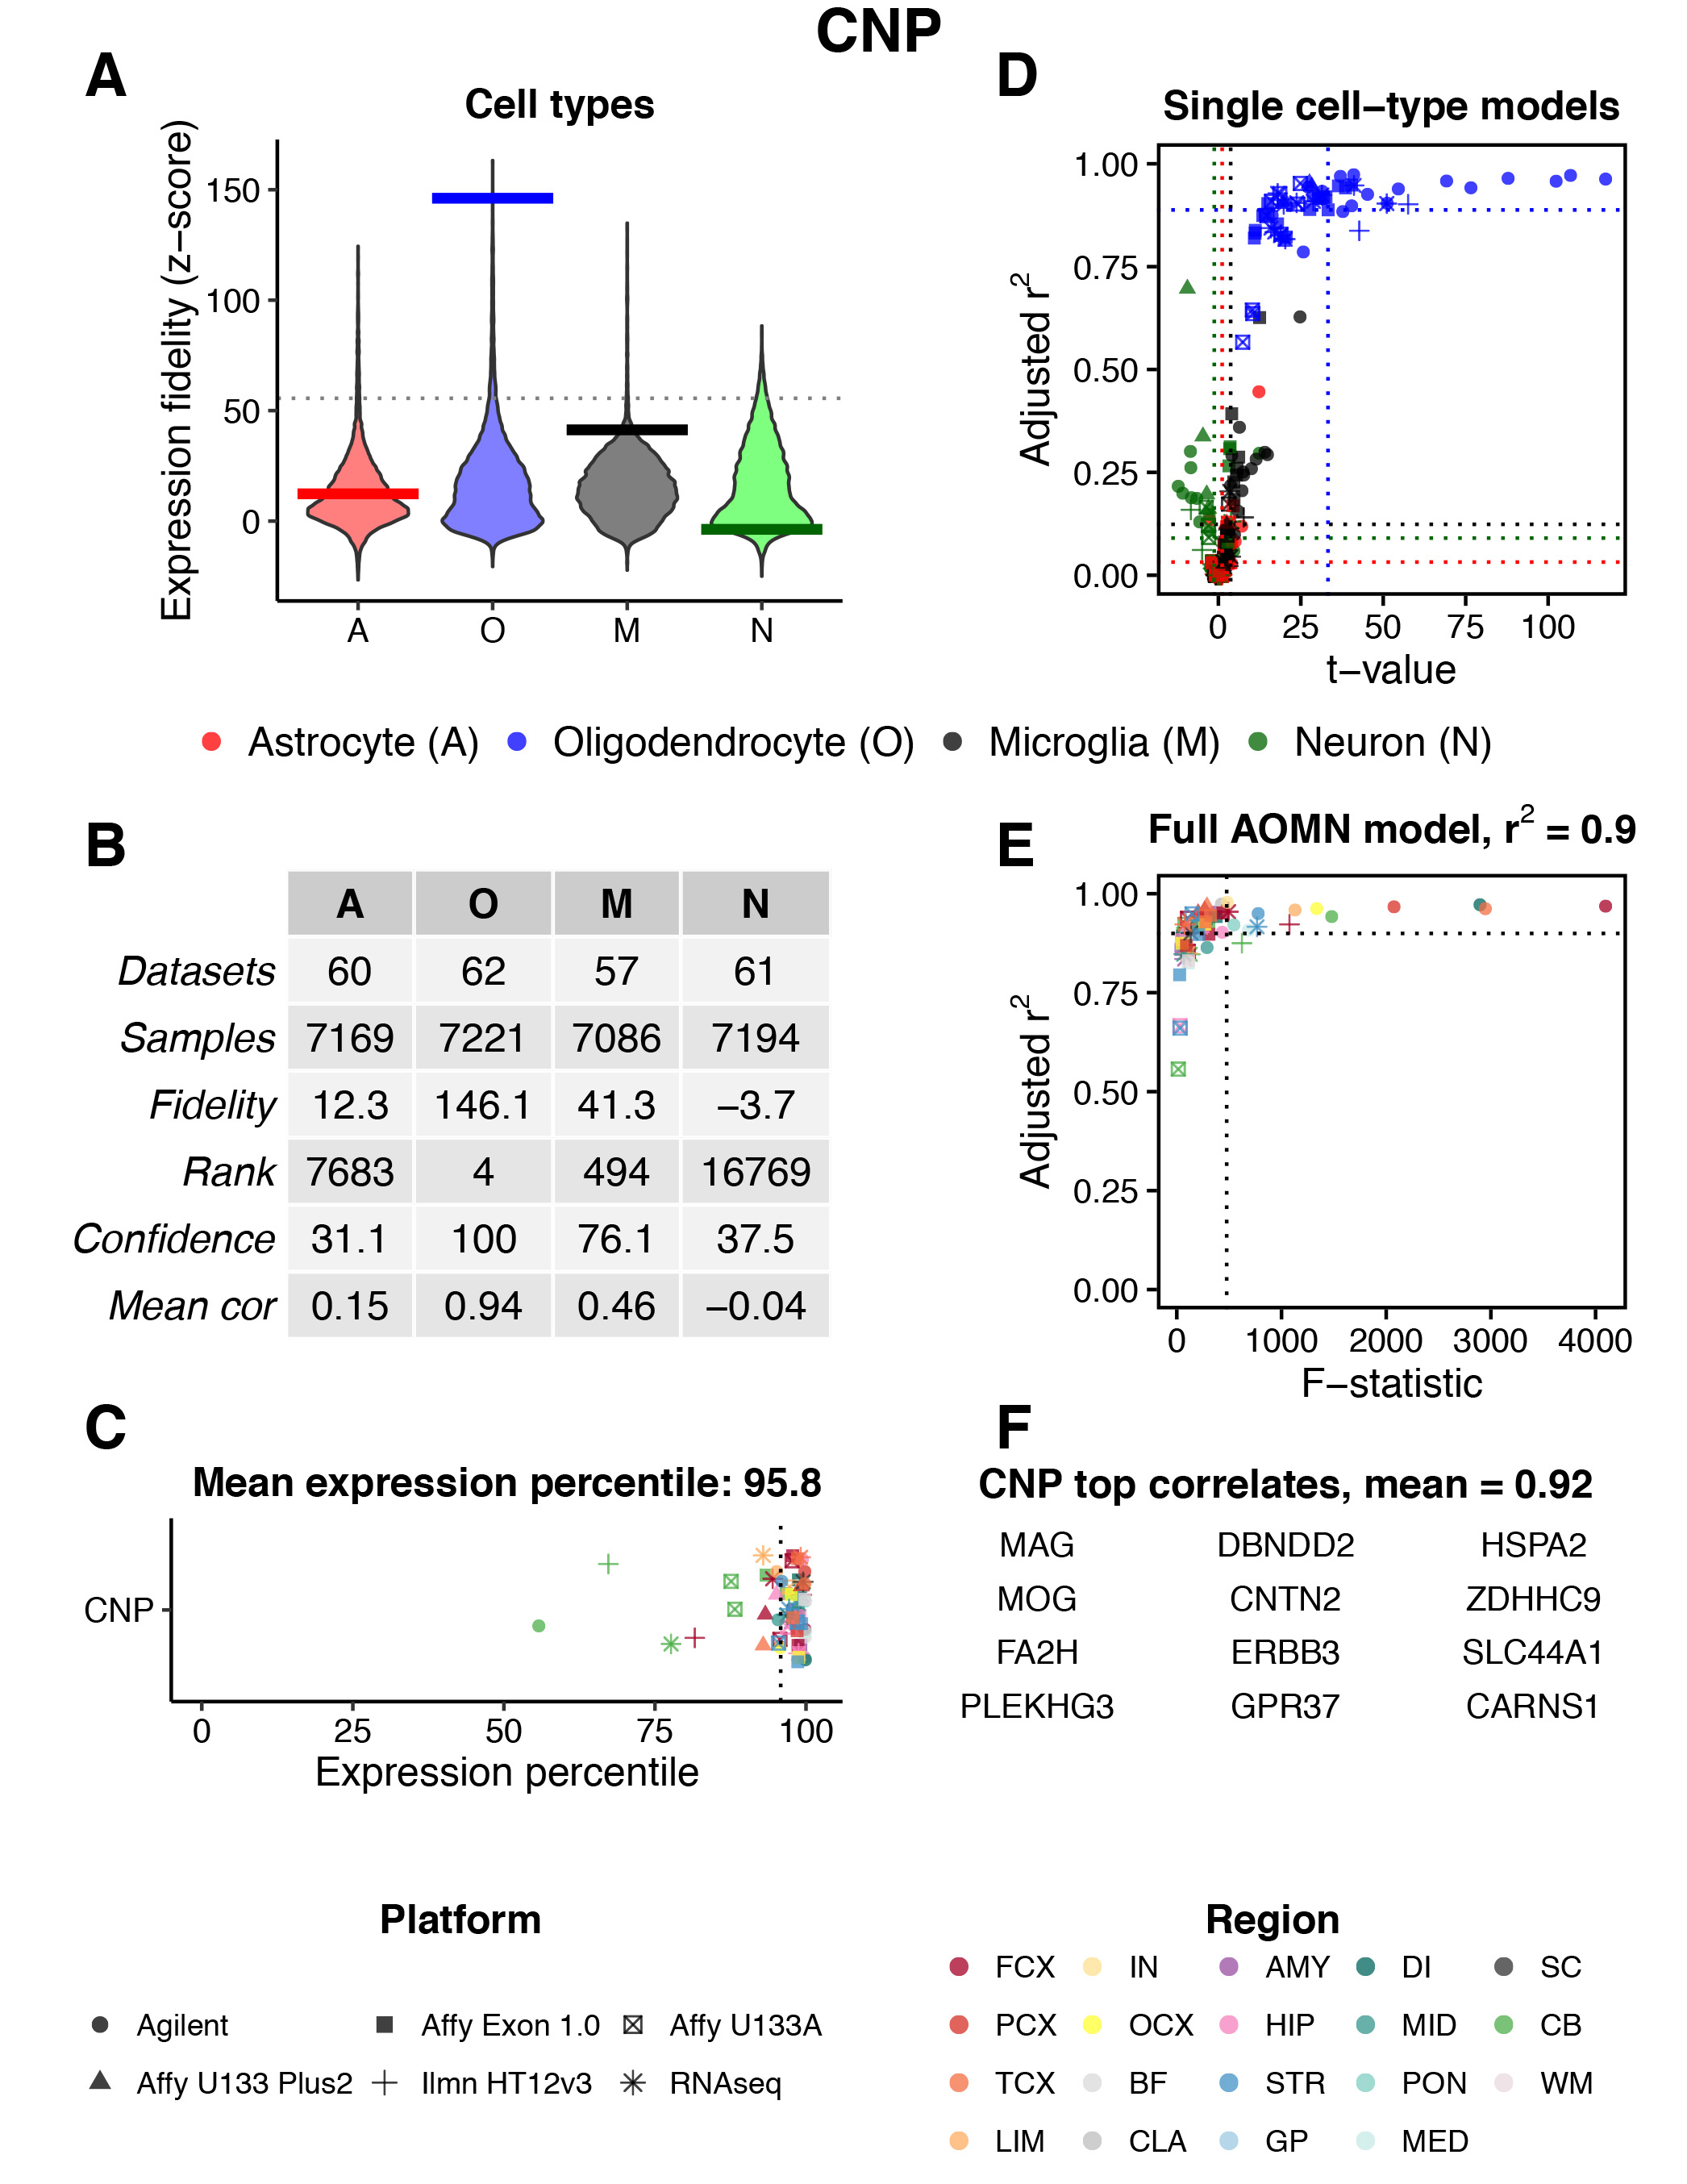 Fig. 3   Gene search example. Results are shown for CNS region = 'All' and Gene = 'CNP'. The meaning of each panel is described below.